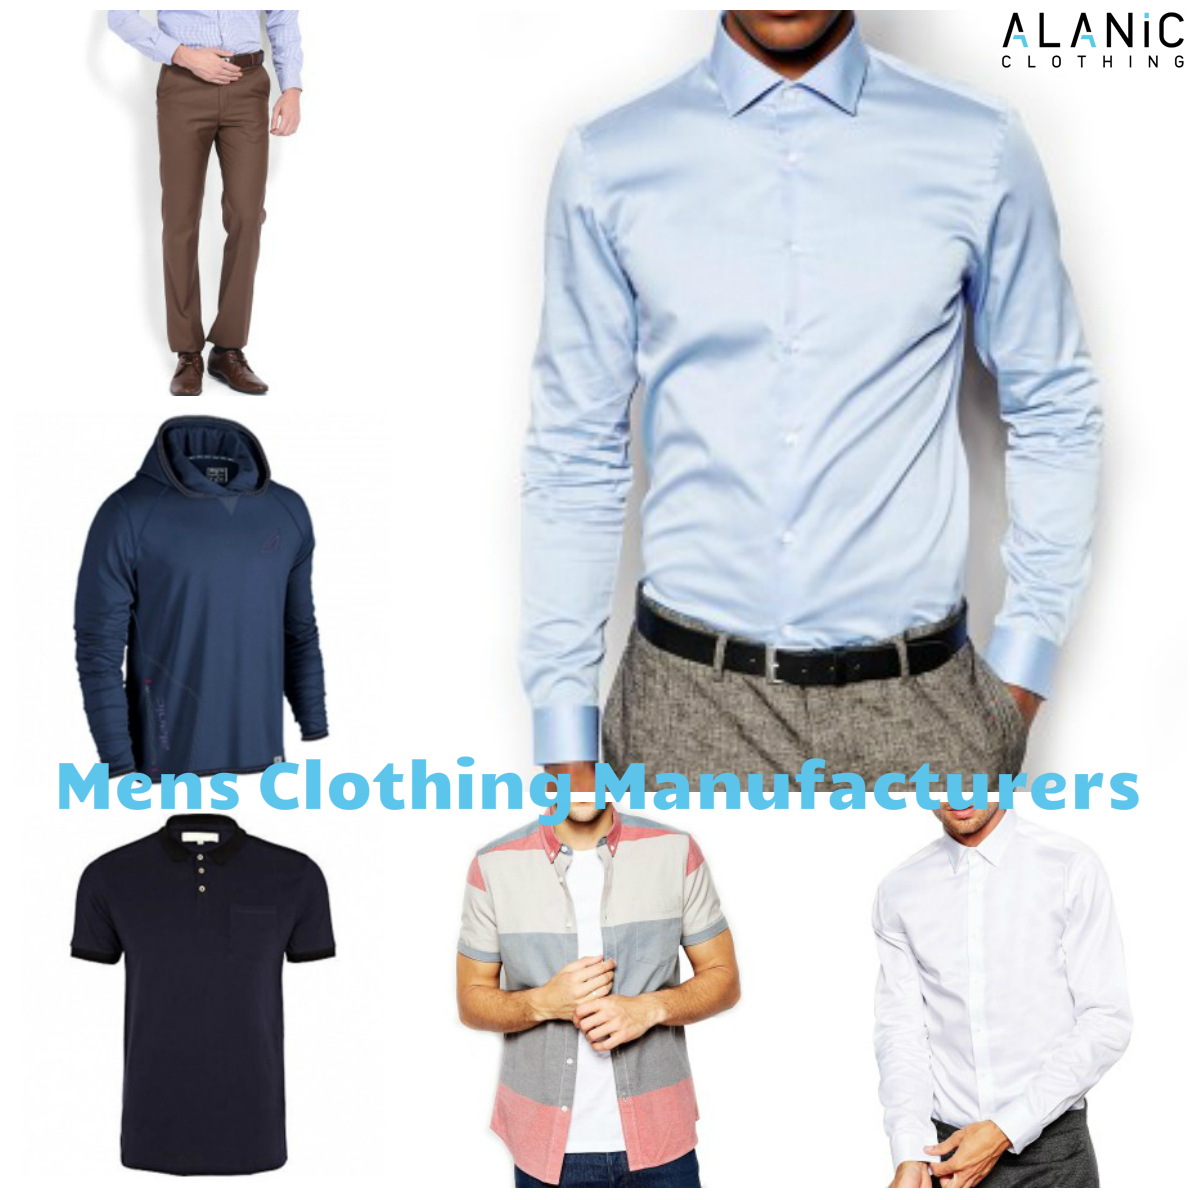 Notch up Your Style Quotient This Spring with Stylish Wholesale Mens Clothing